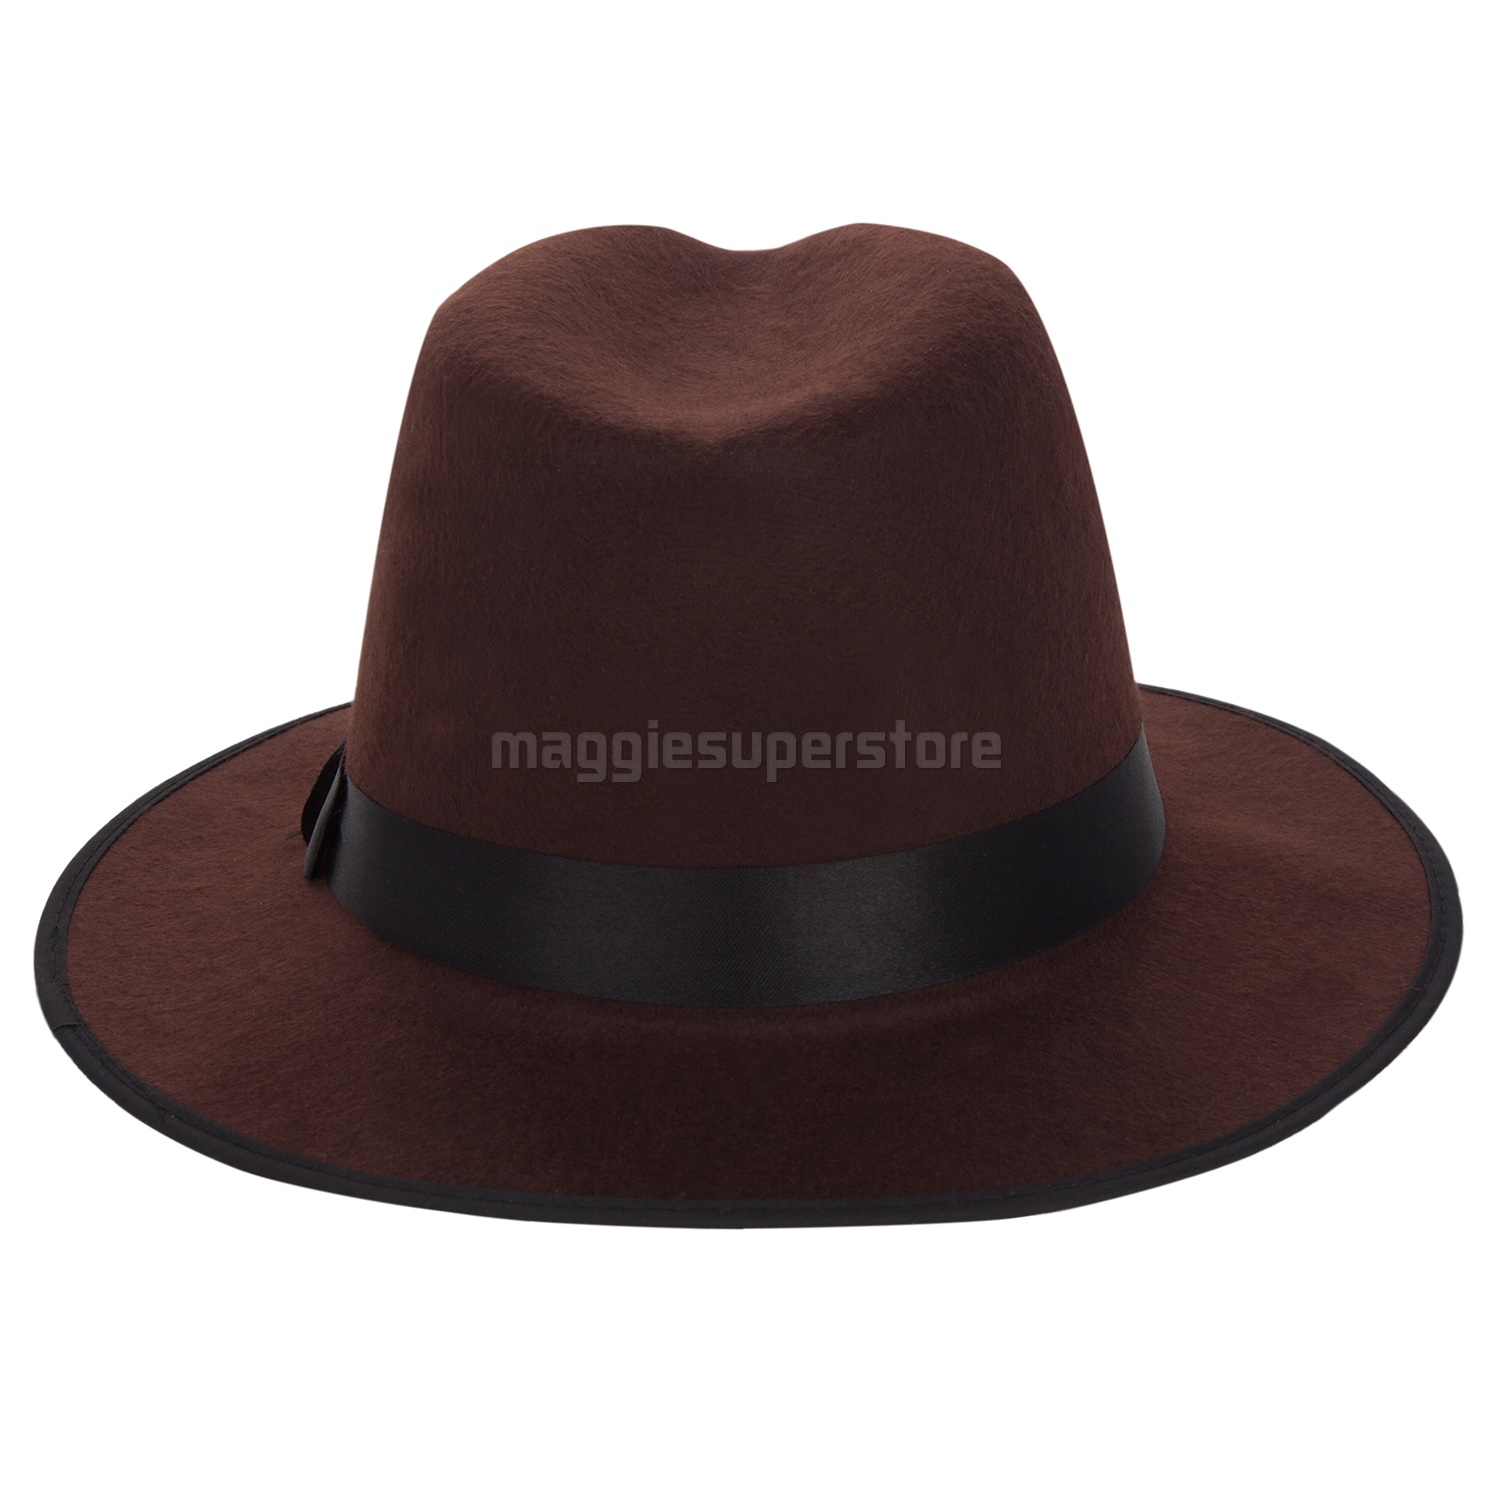 d45b9cbca45 Details about Brown Women Men Vintage Wide Brim Wool Felt Fedora Trilby Hat  Floppy Bowler Cap